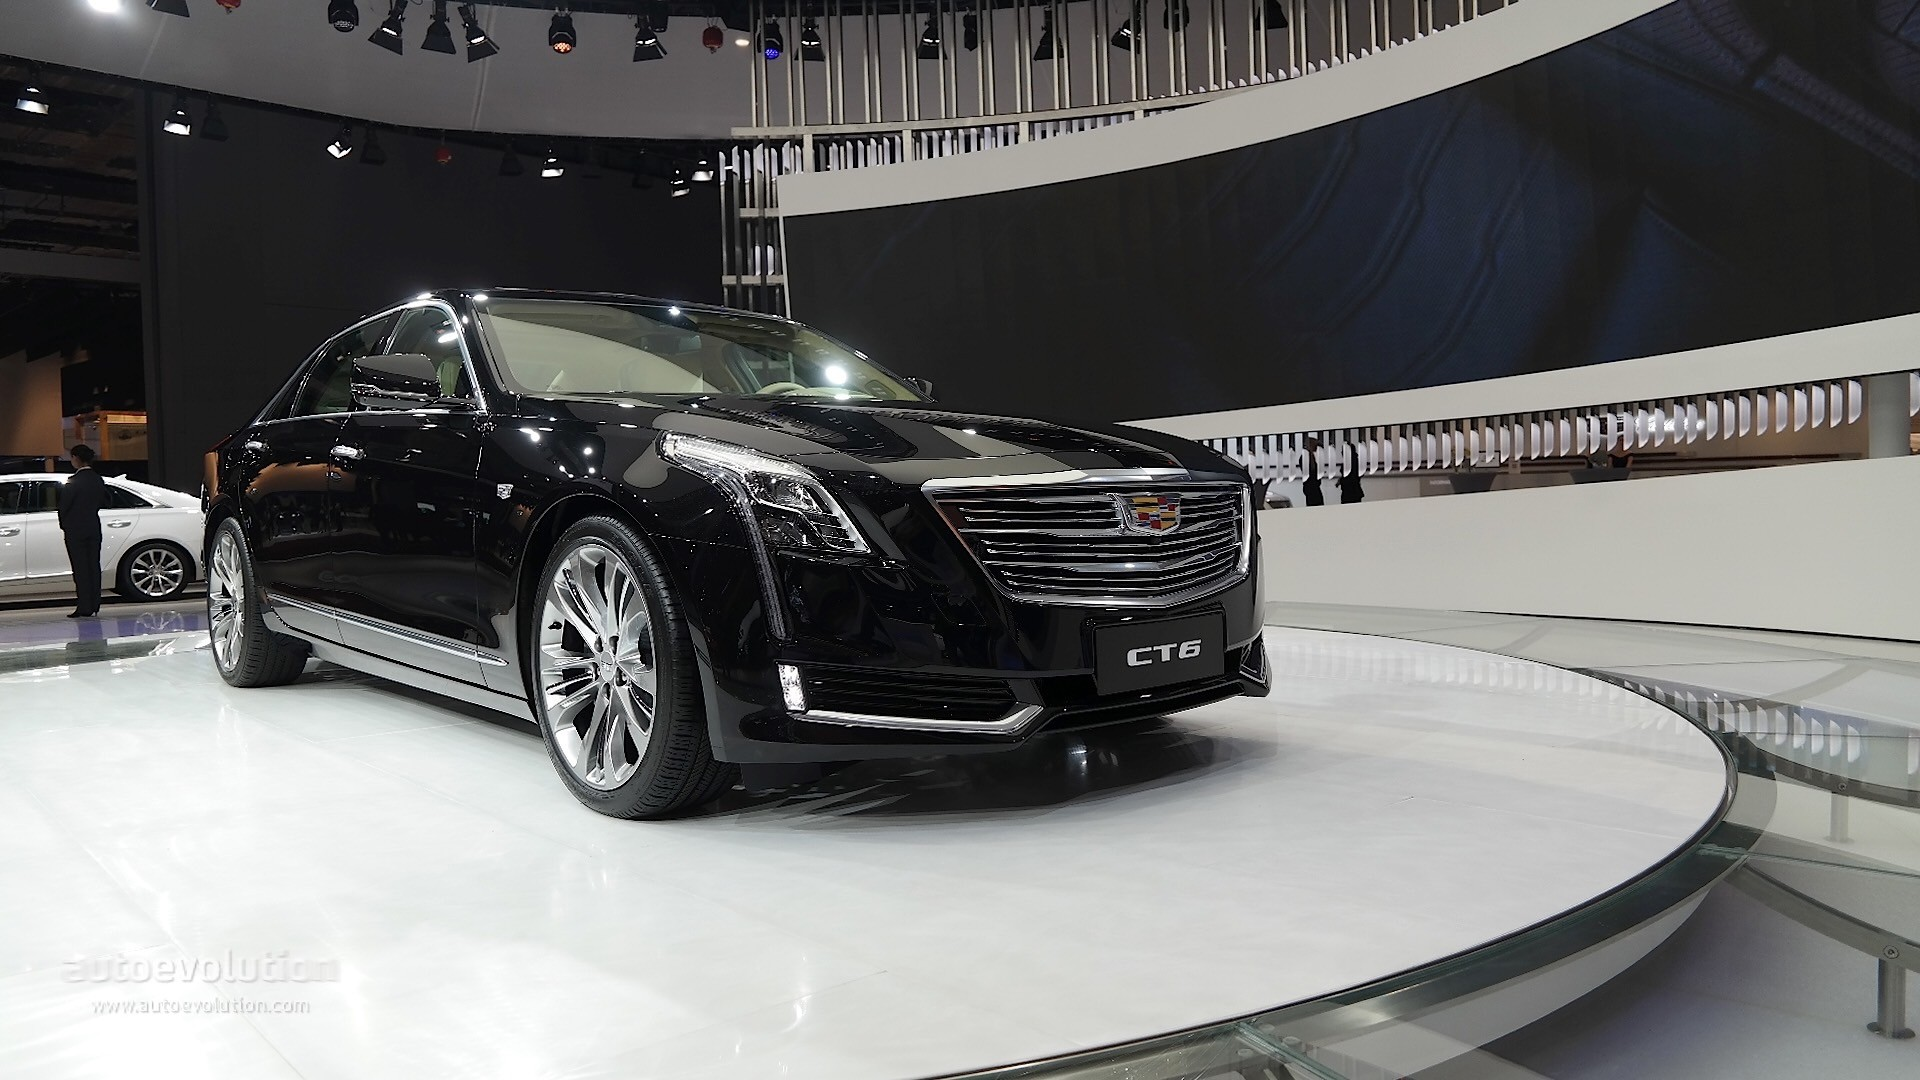 Cadillac Escala Suv Rendering Is More Of A High Tech